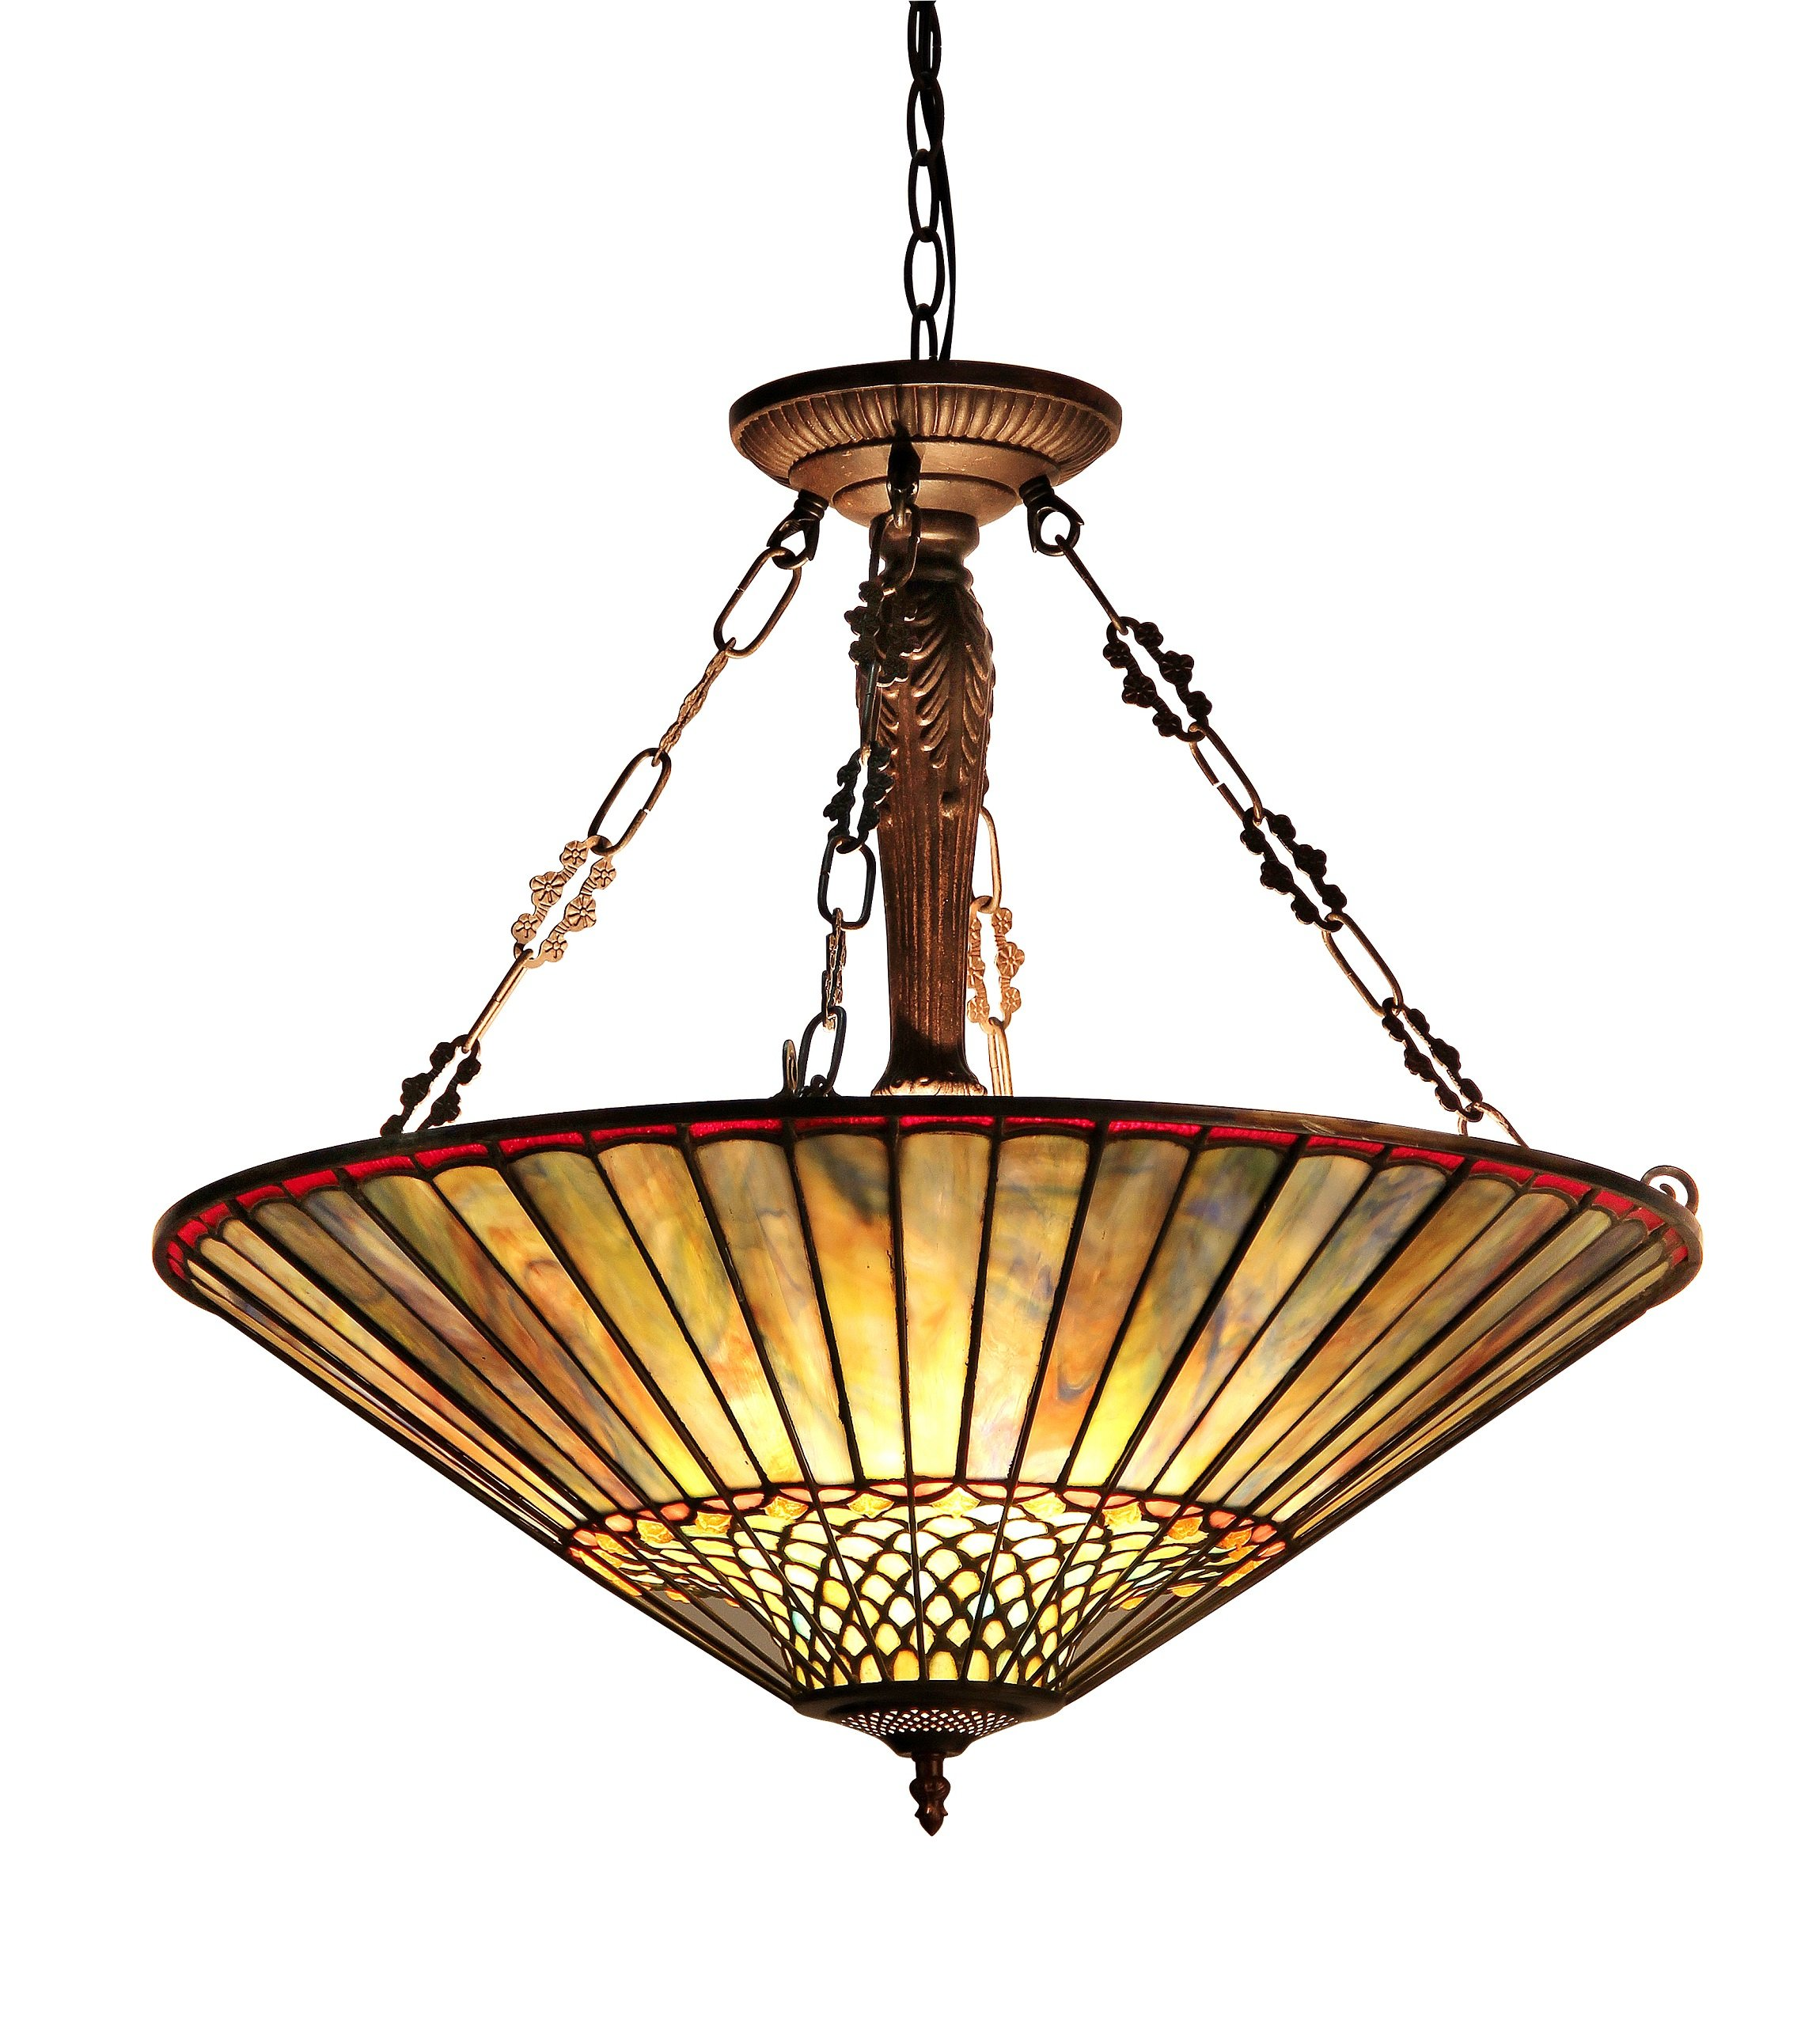 Chloe Lighting CH35002BG25-UH3 Grace Tiffany-Style Geometric 3-Light Inverted Ceiling Pendant with Fixture with 22-Inch Shade